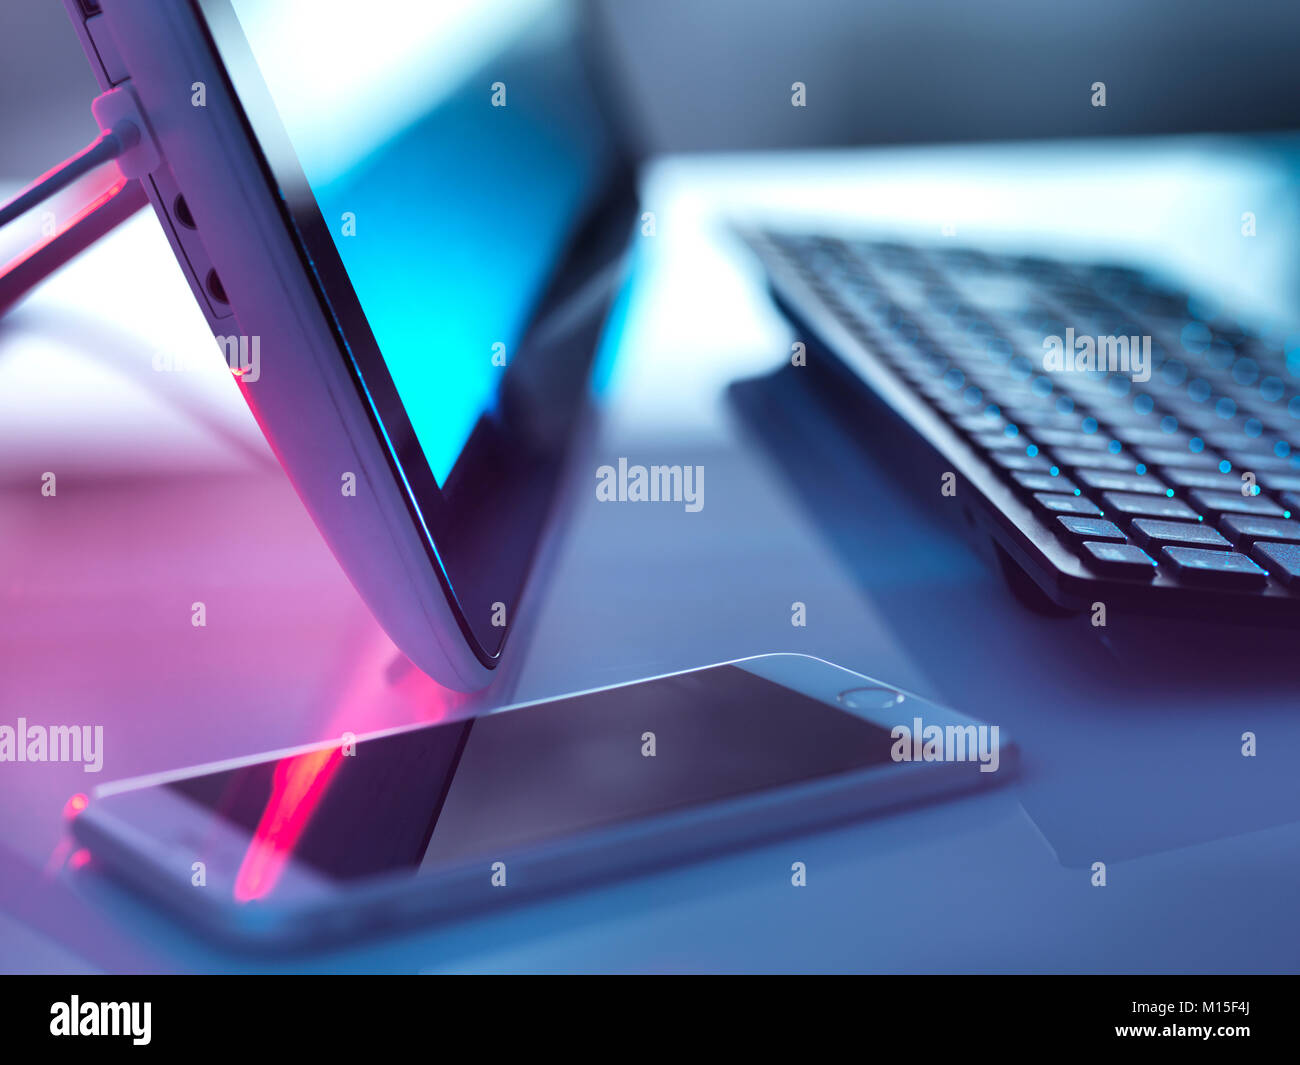 Computer hardware and smartphone. - Stock Image